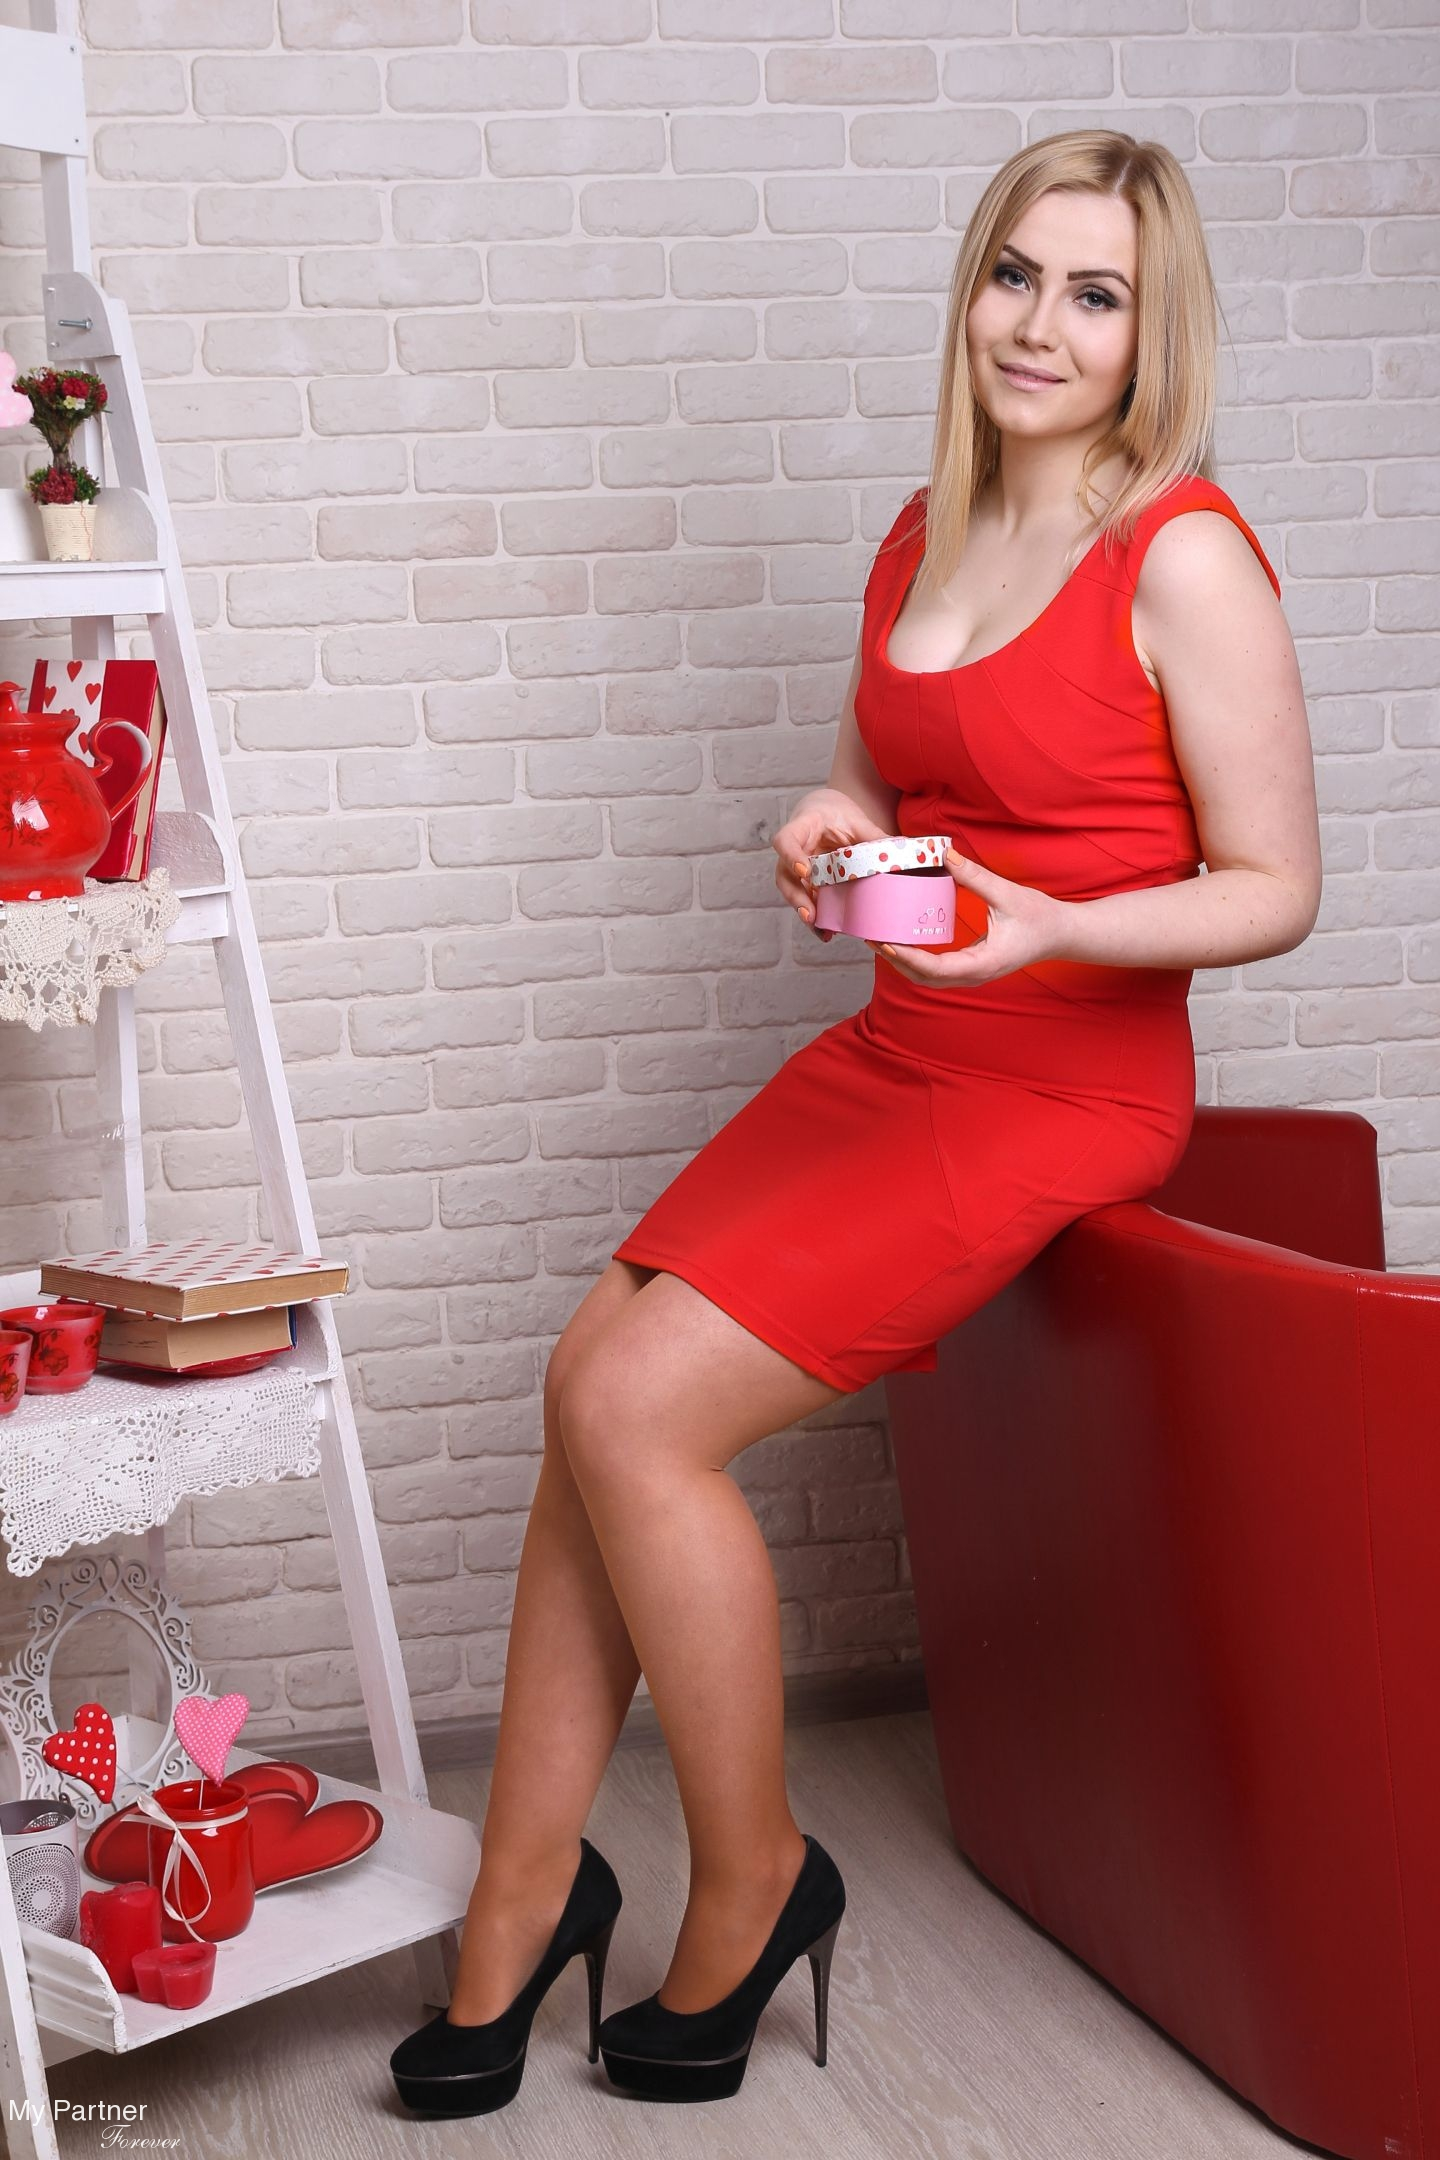 Datingsite to Meet Gorgeous Ukrainian Girl Nataliya from Vinnitsa, Ukraine